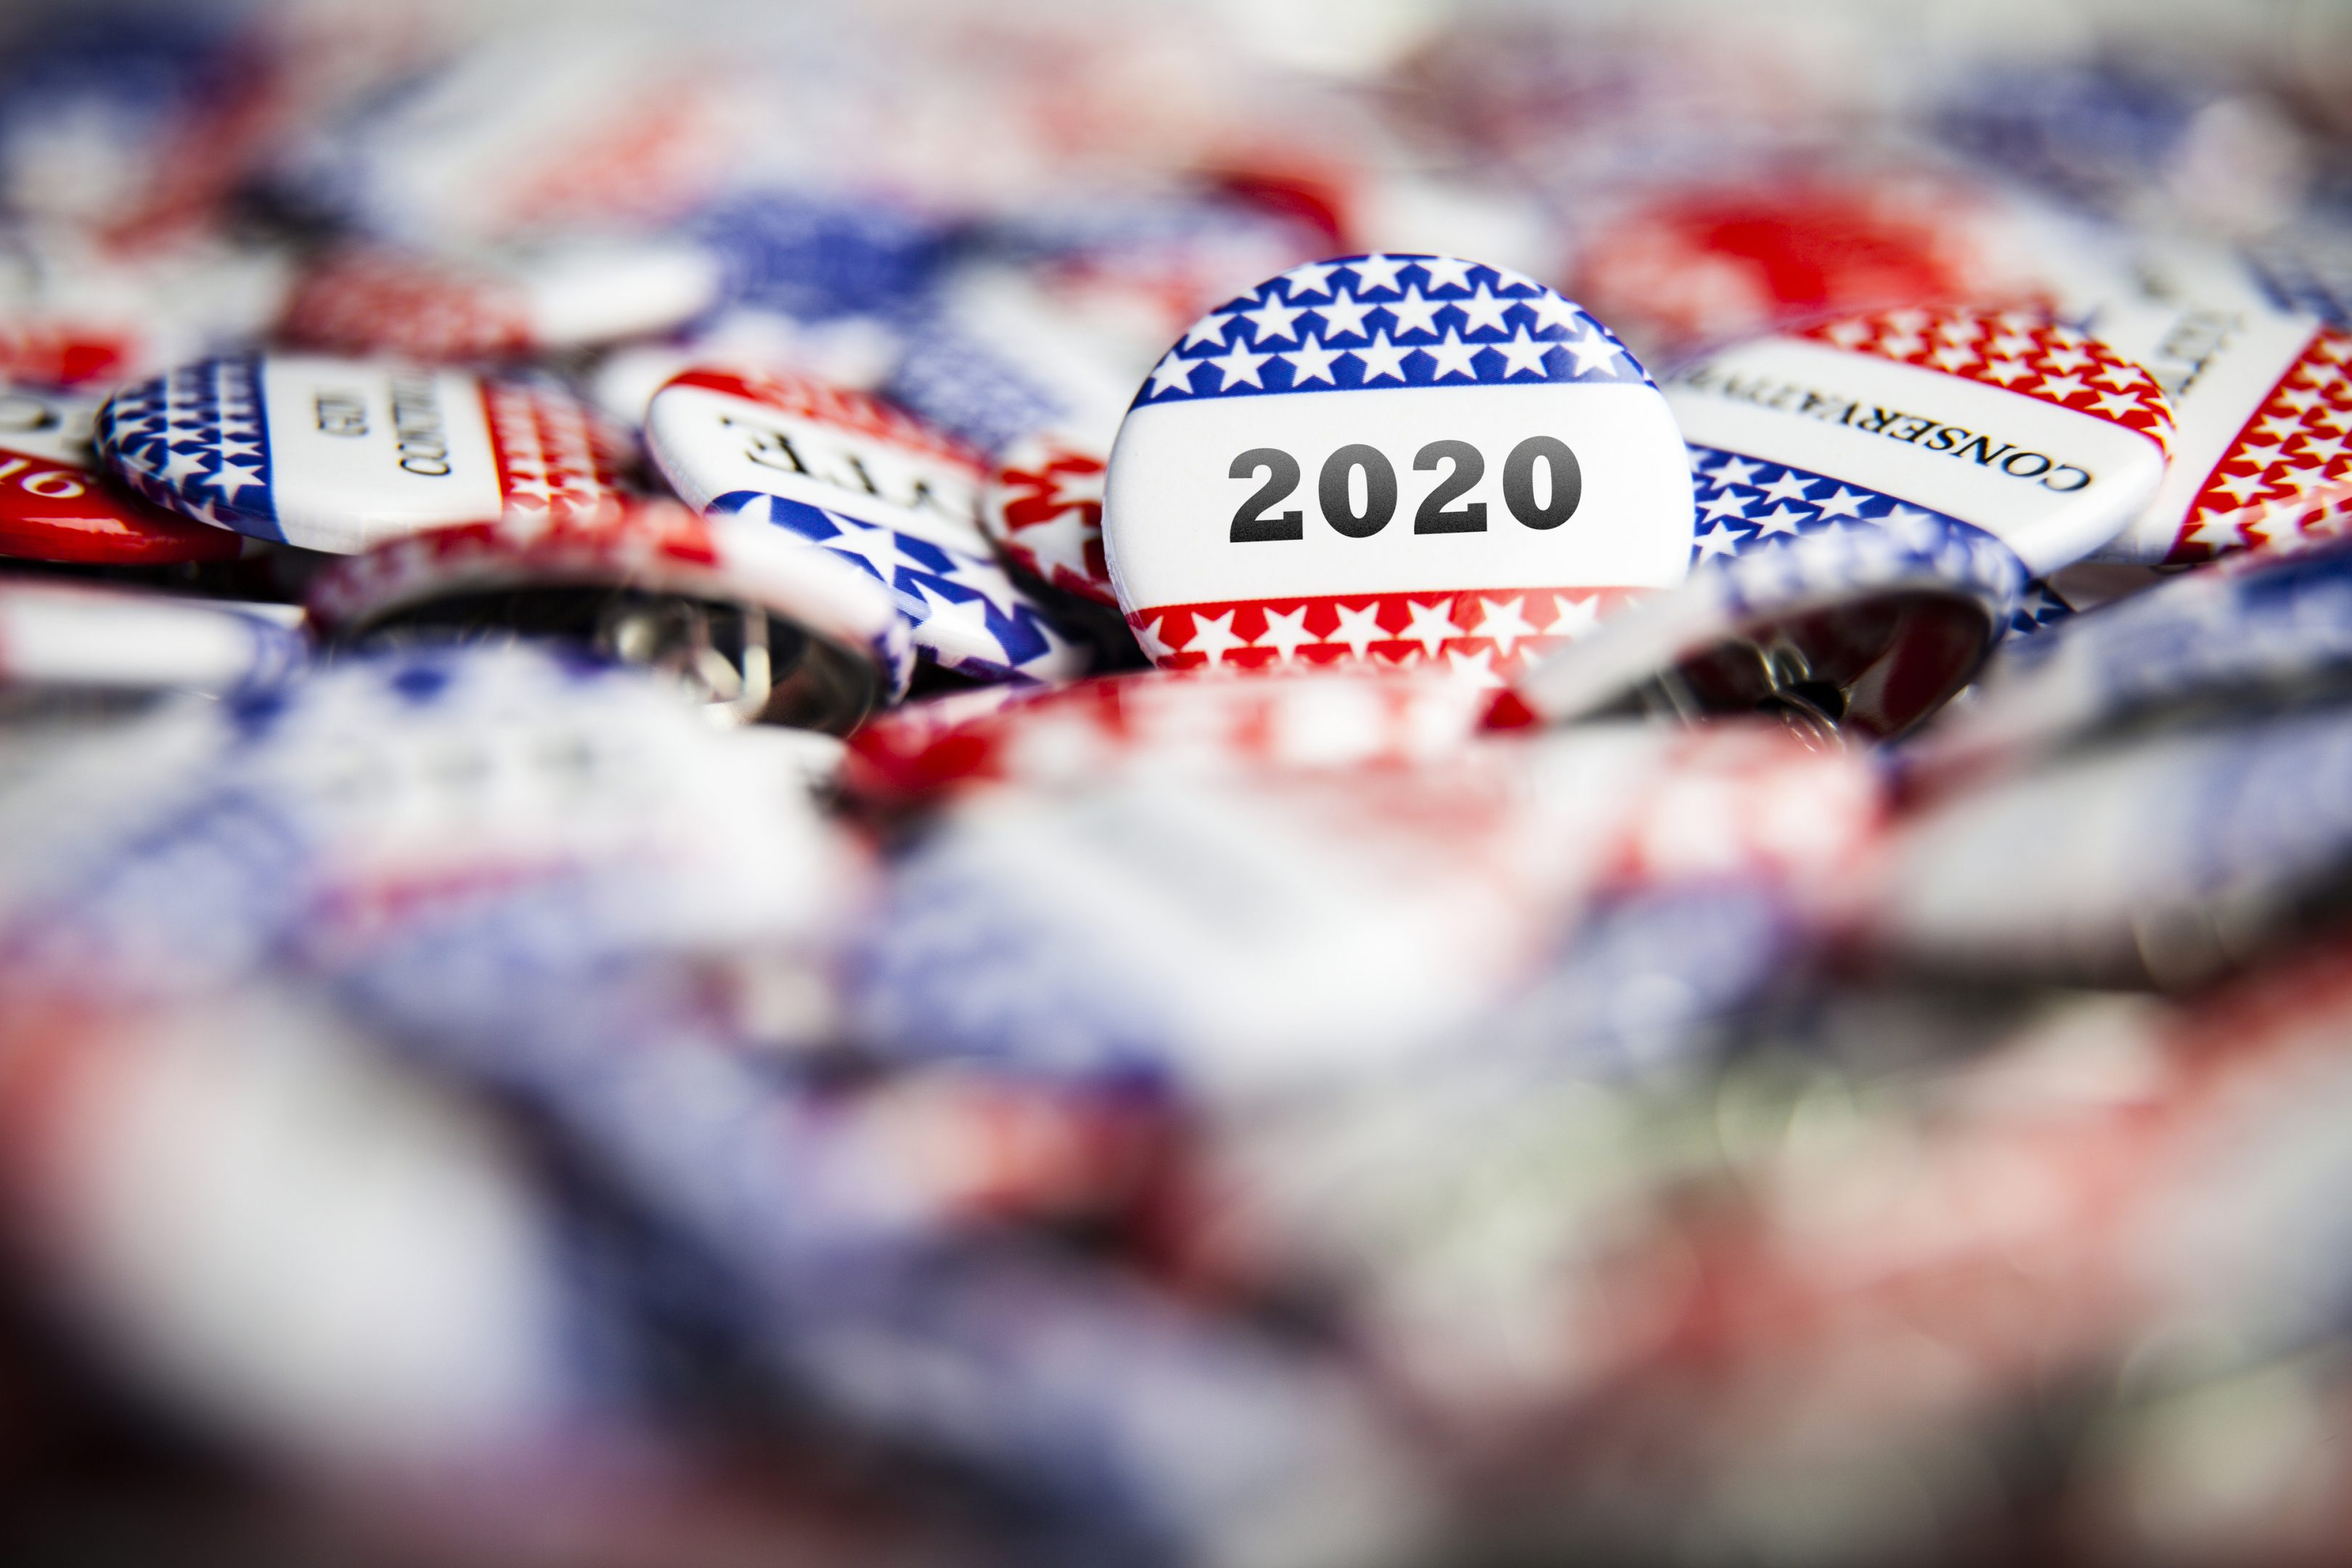 Closeup of election vote buttons with text that says 2020